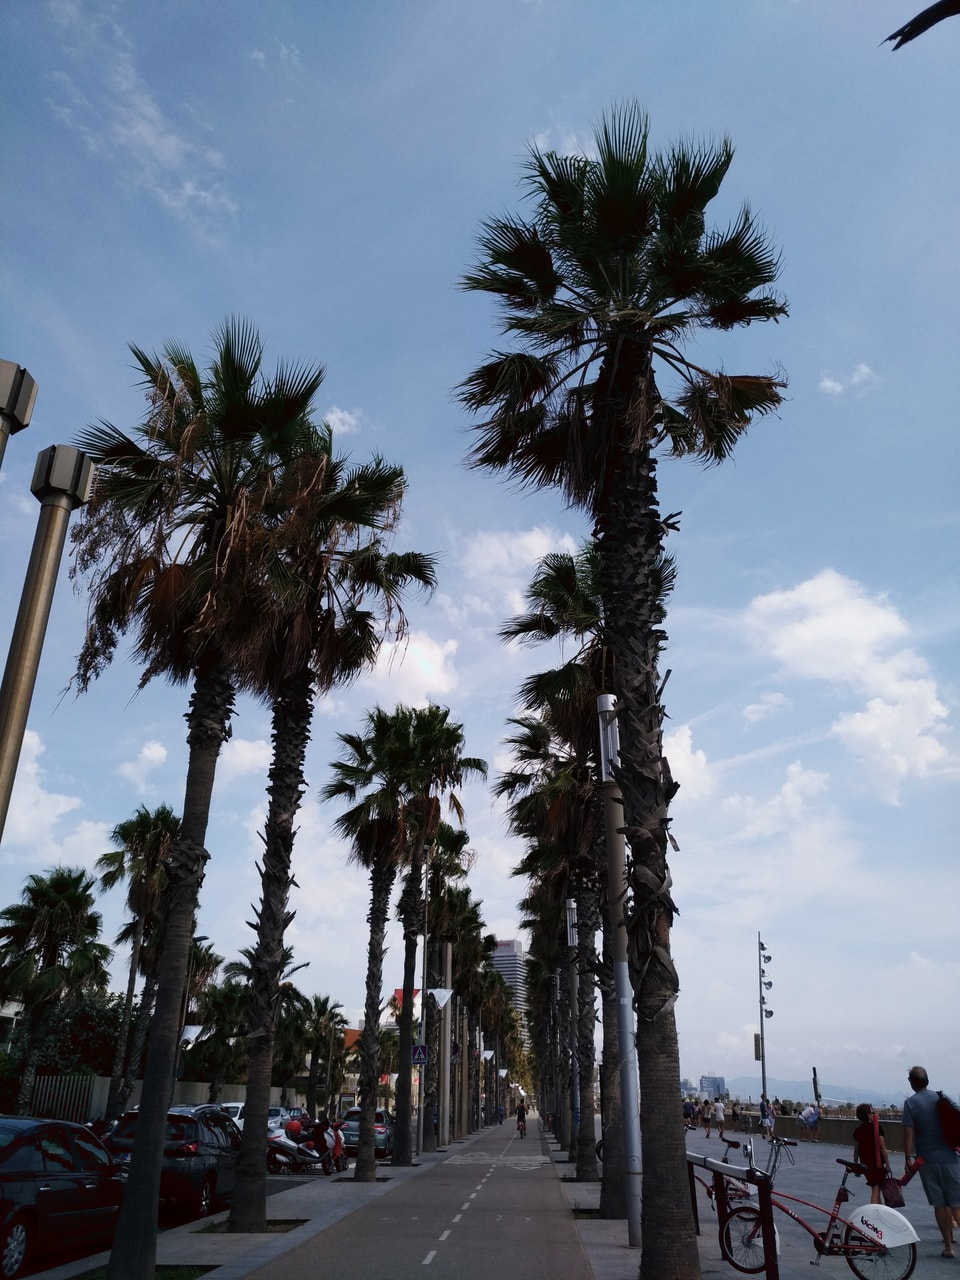 sea, sky, trees and barcellona